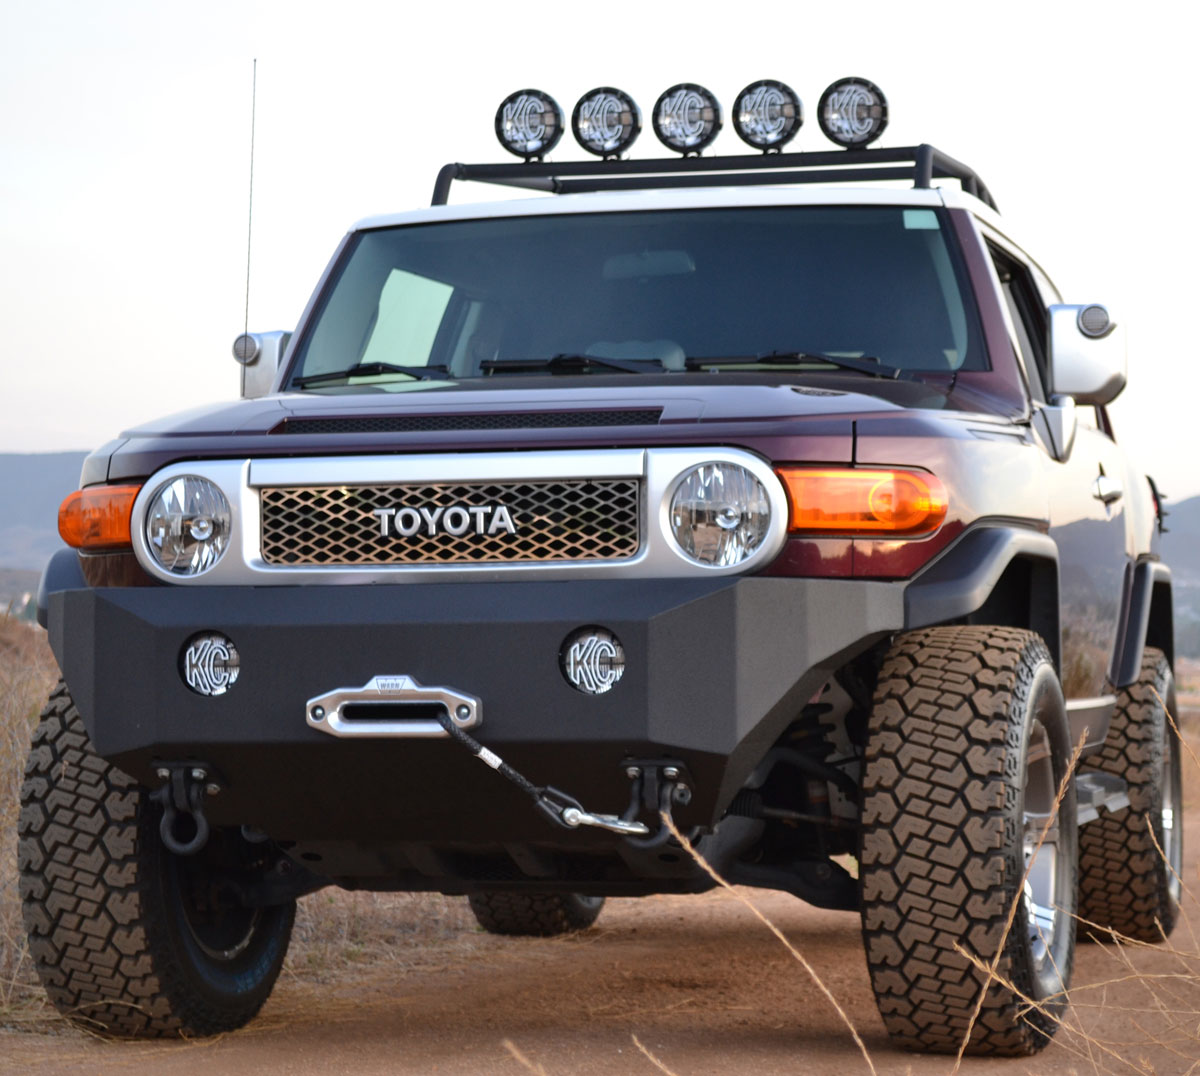 Fj Cruiser Bumpers And Grille Guards From Pure Fj Cruiser